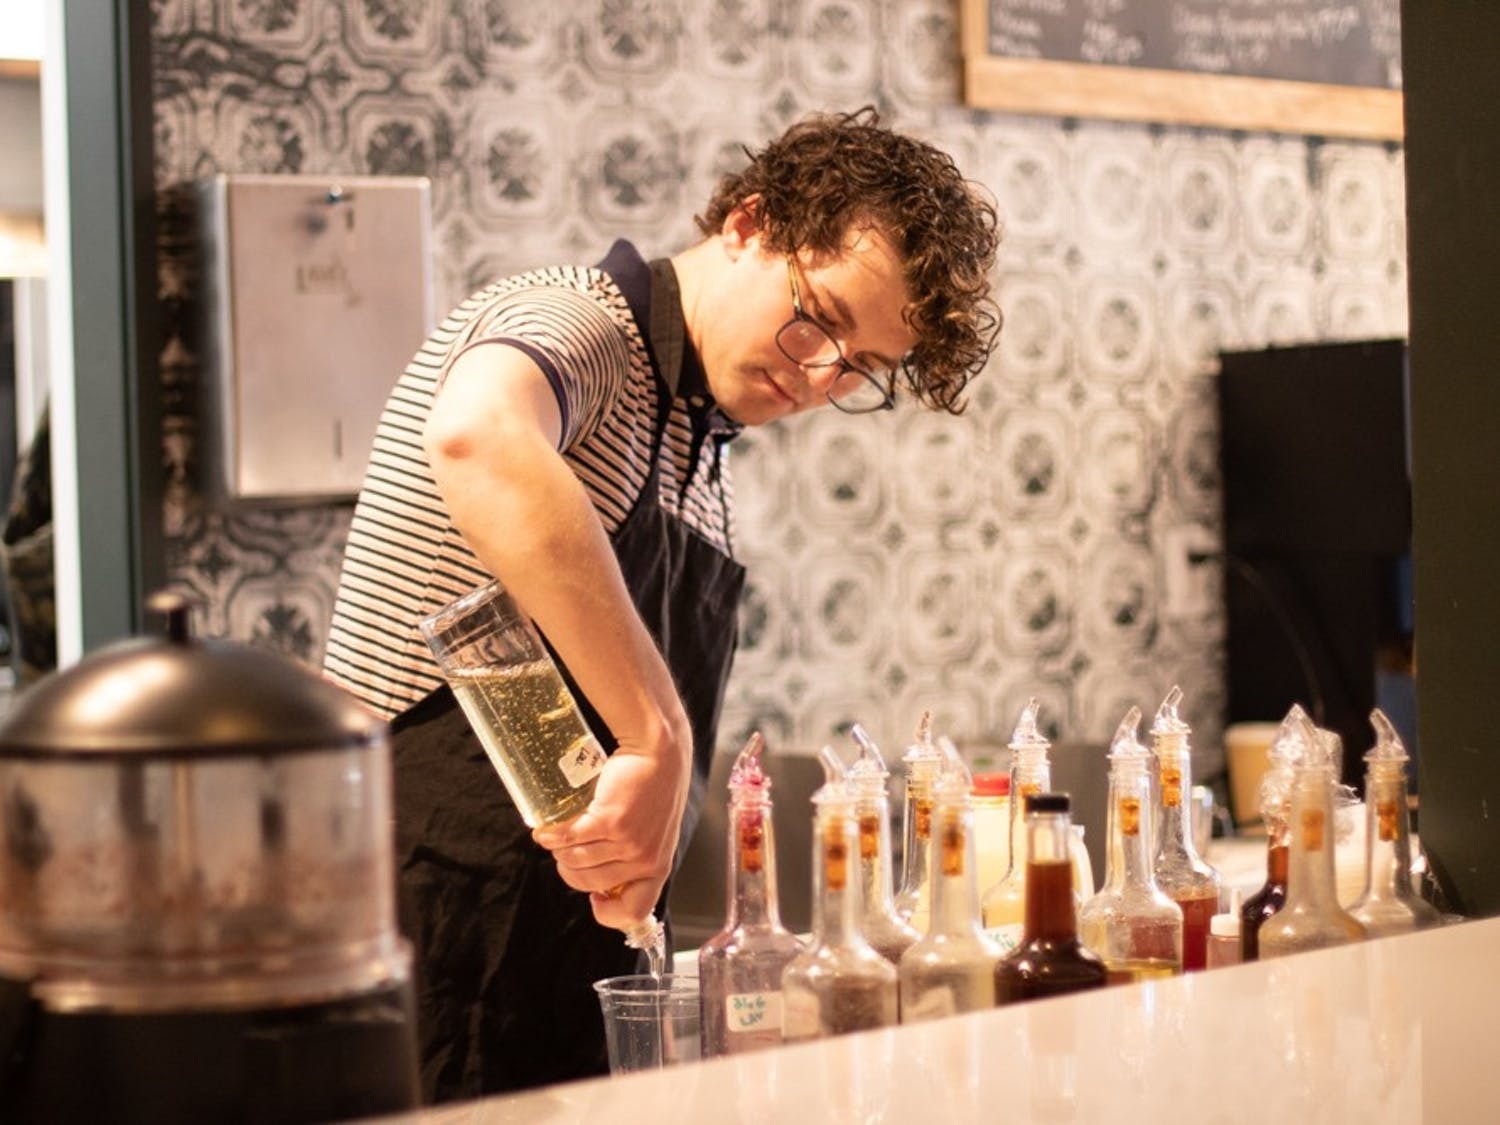 Nick Curee, a 24-year-old Nashville native, prepares a drink at Epilogue Books Chocolate Brews on Dec. 3, 2019.